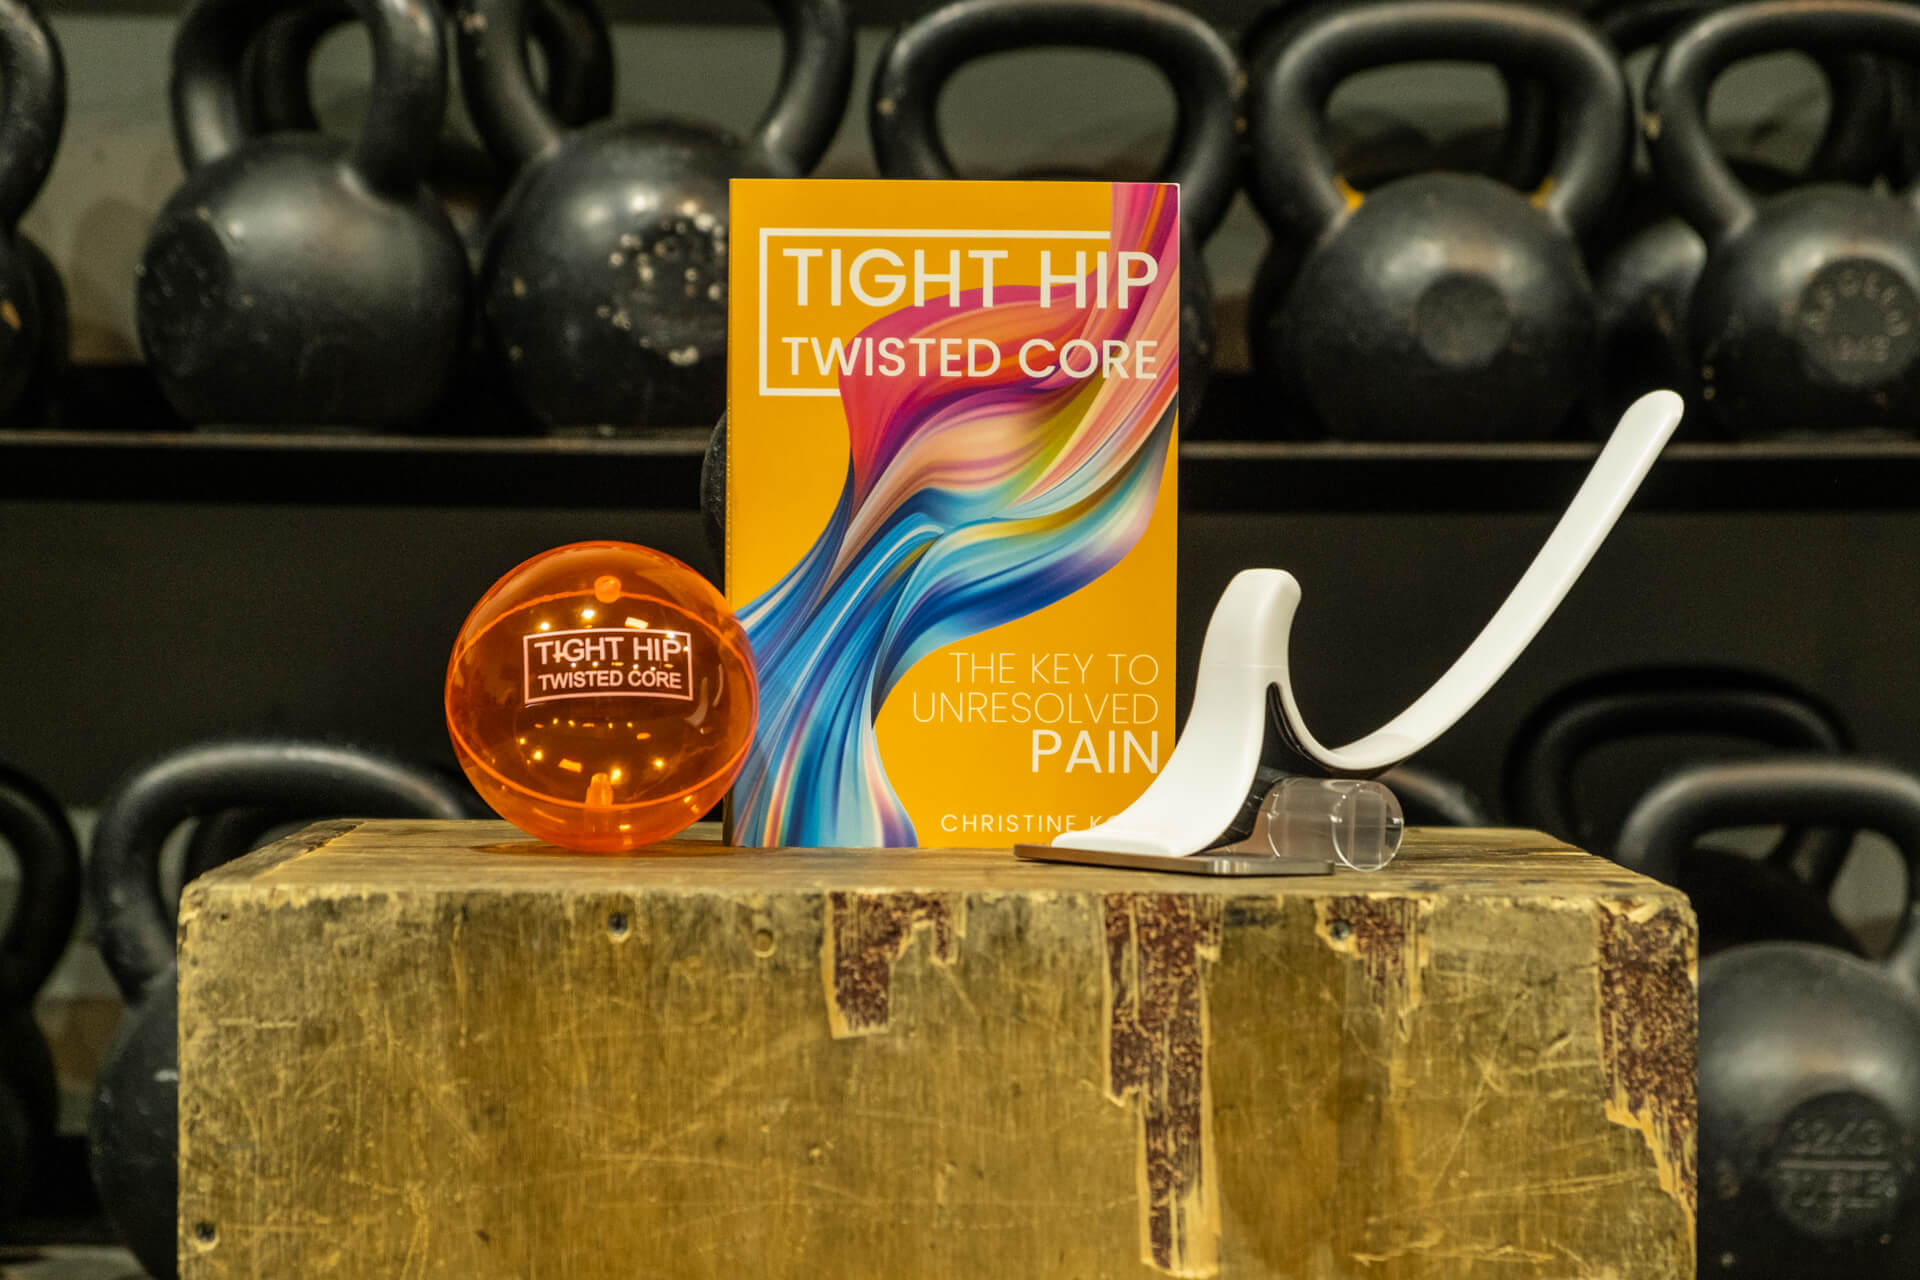 Tight hip twisted core book